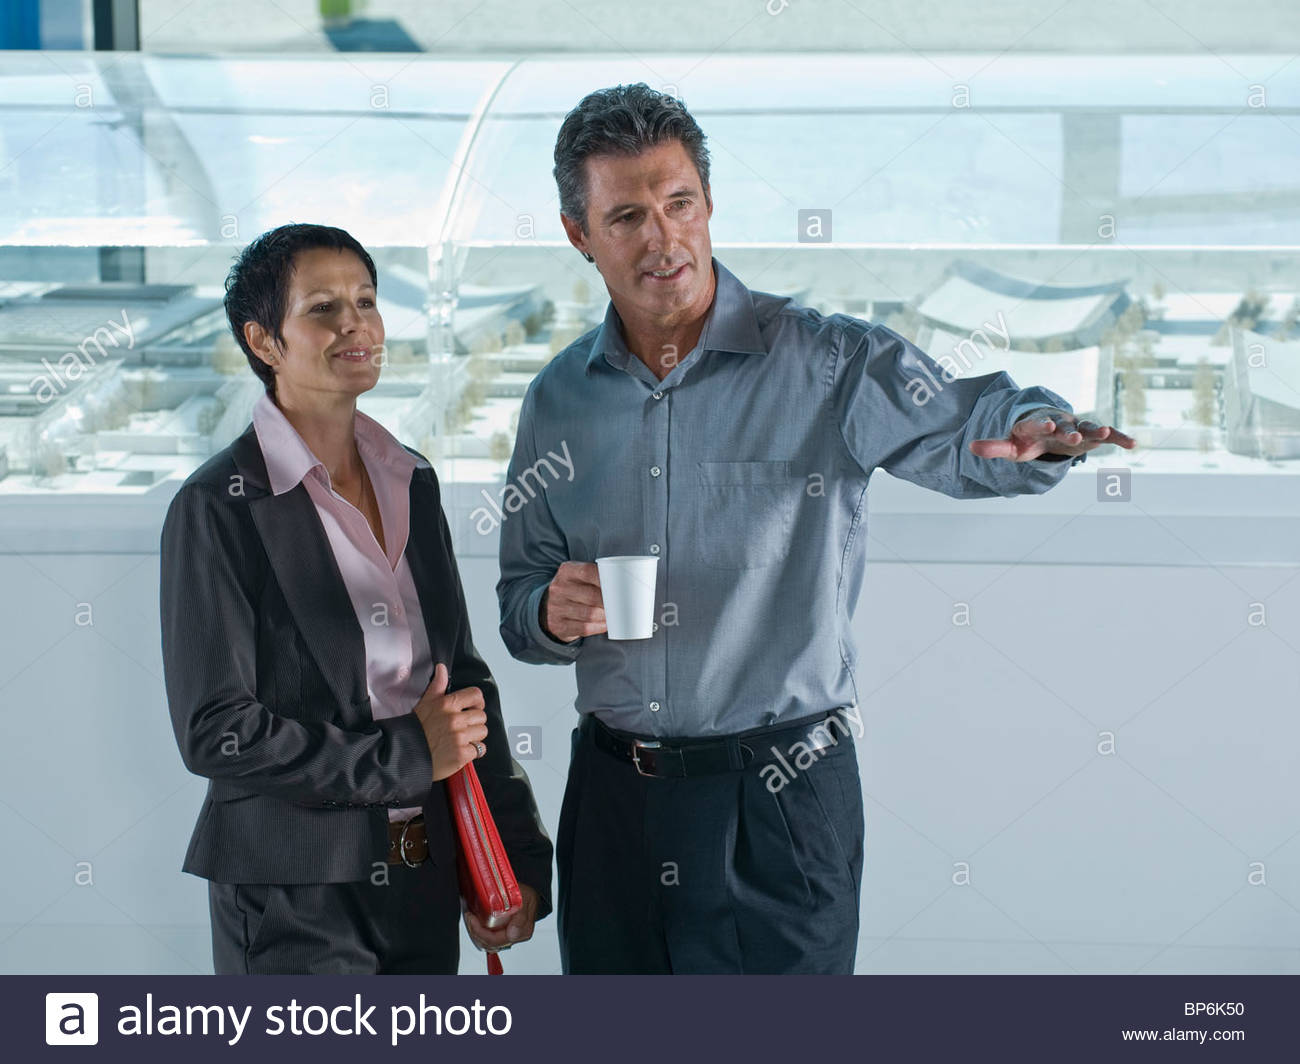 A businessman and businesswoman discussing architectural models - Stock Image